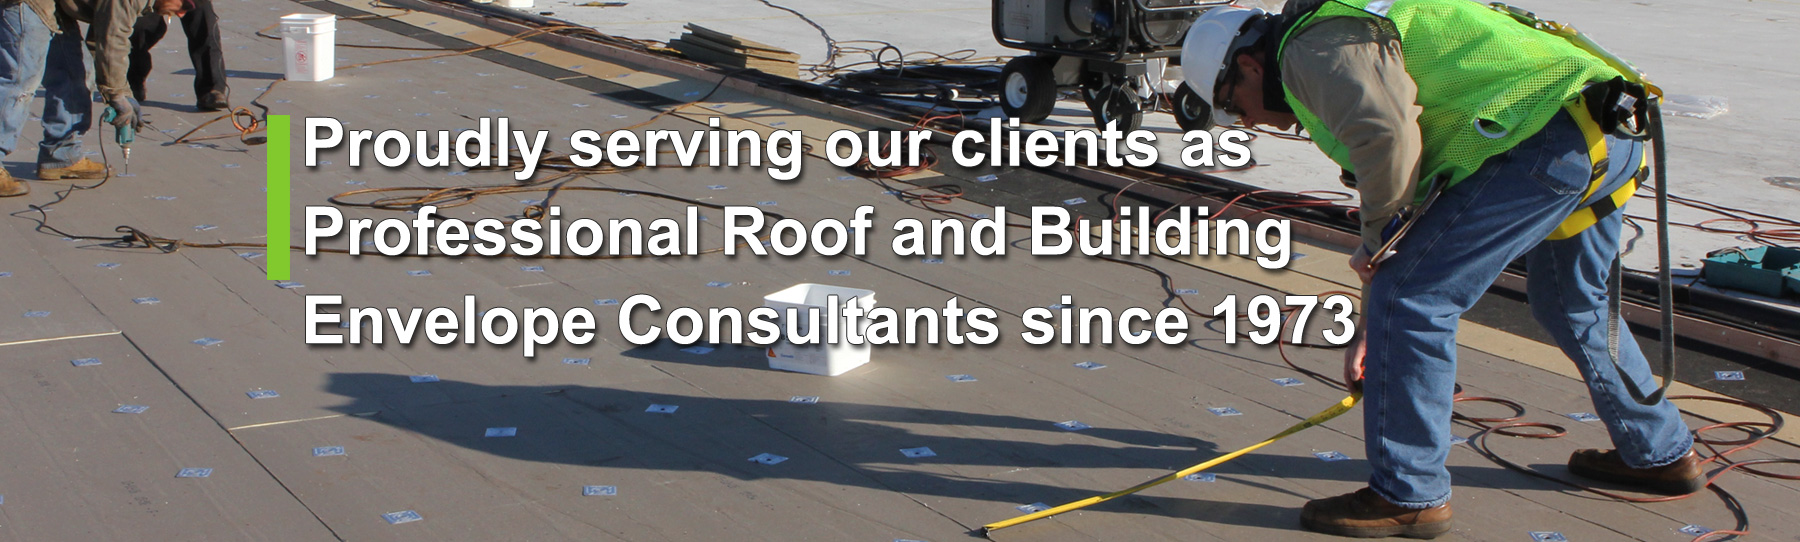 professional roof and building envelope consultants since 1973